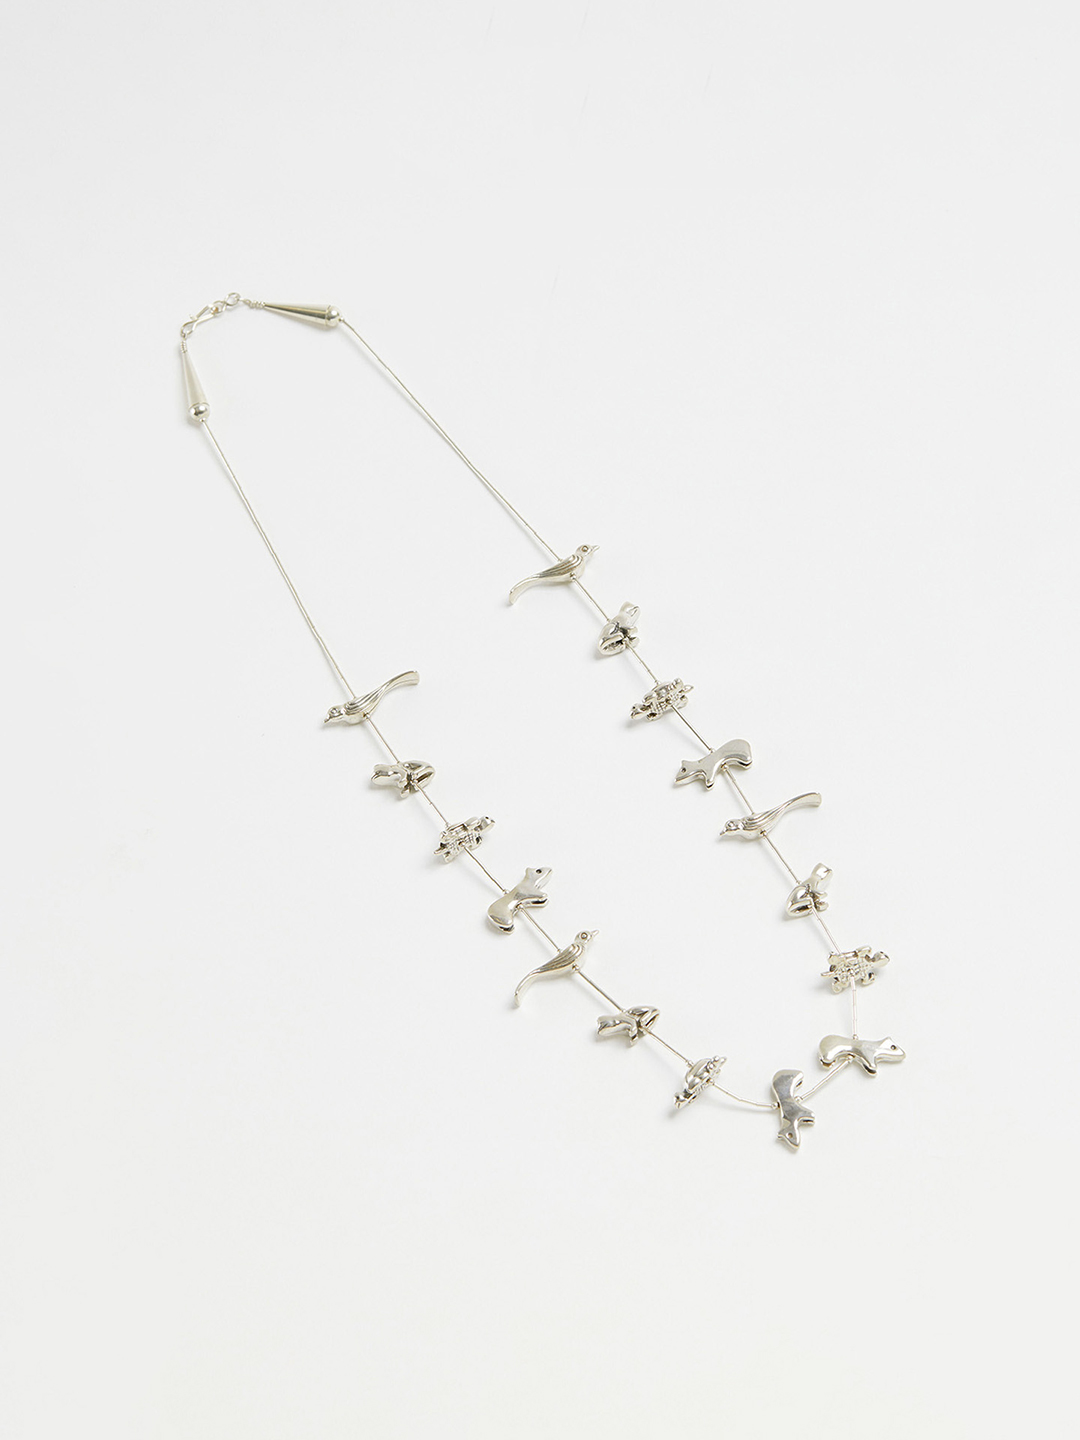 Animal Fetish Necklace - 66cm Silver